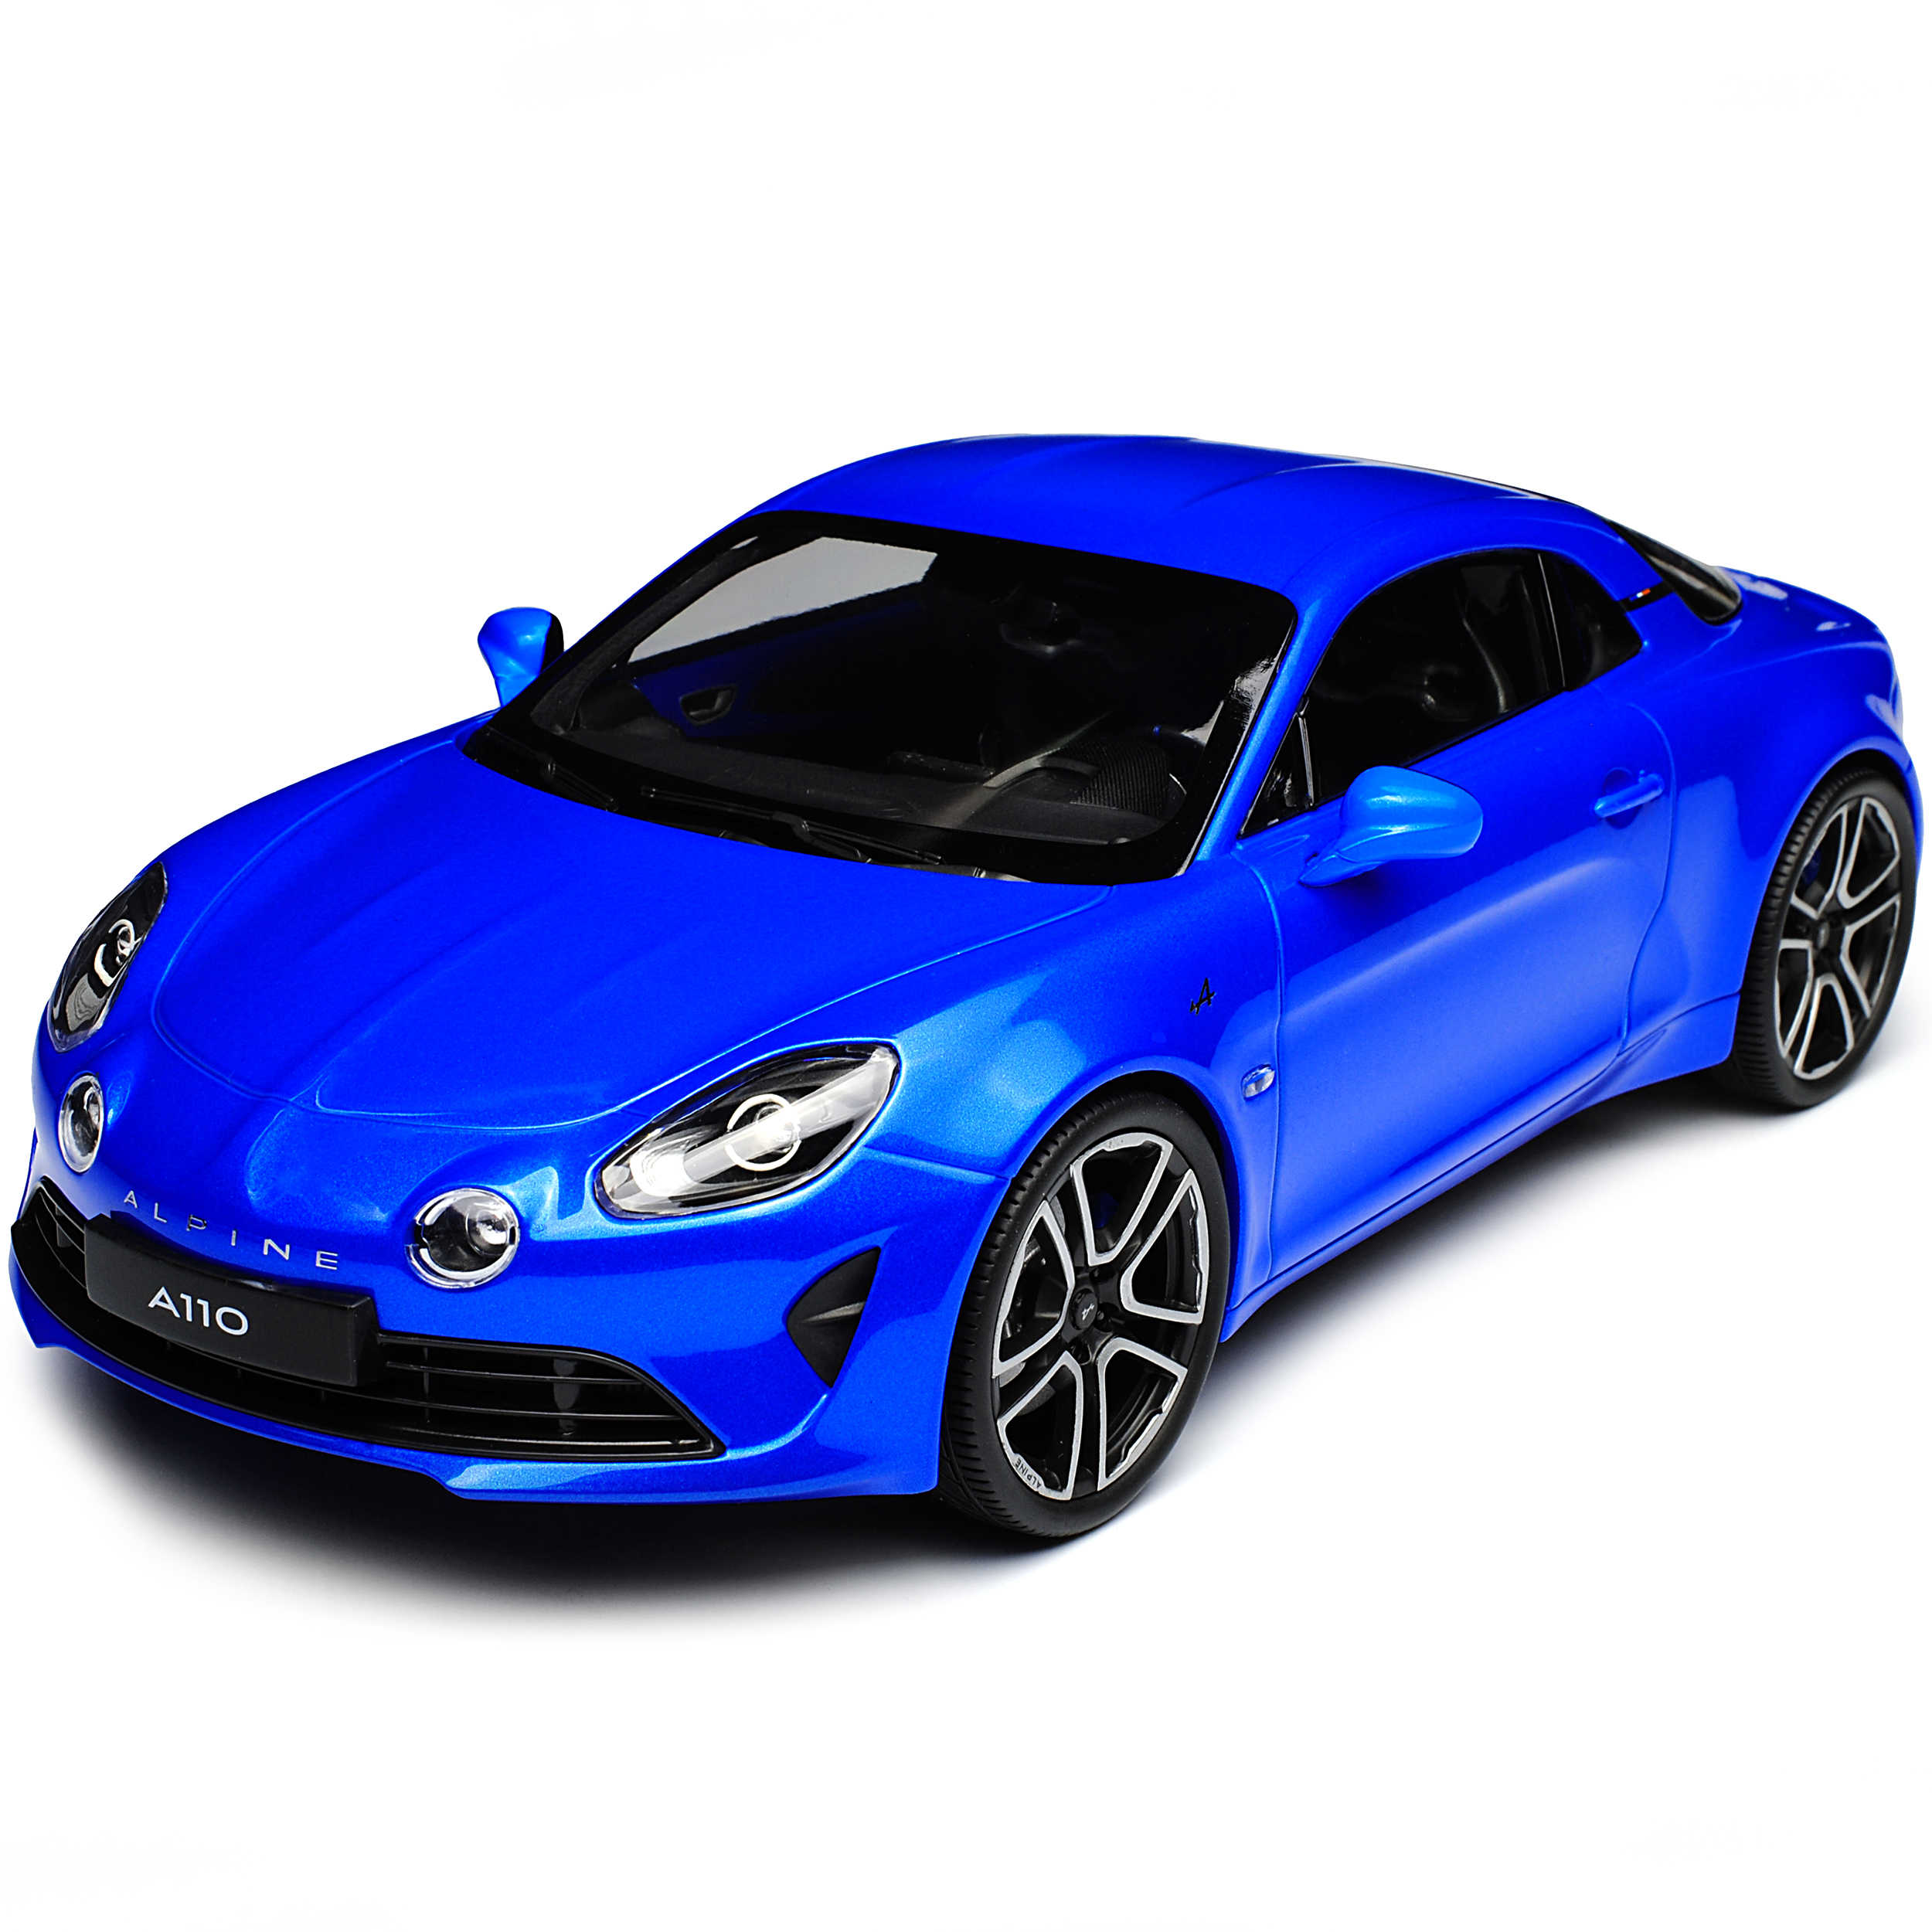 renault alpine a110 coupe blau premiere edition ab 2017 1 18 norev modell auto ebay. Black Bedroom Furniture Sets. Home Design Ideas